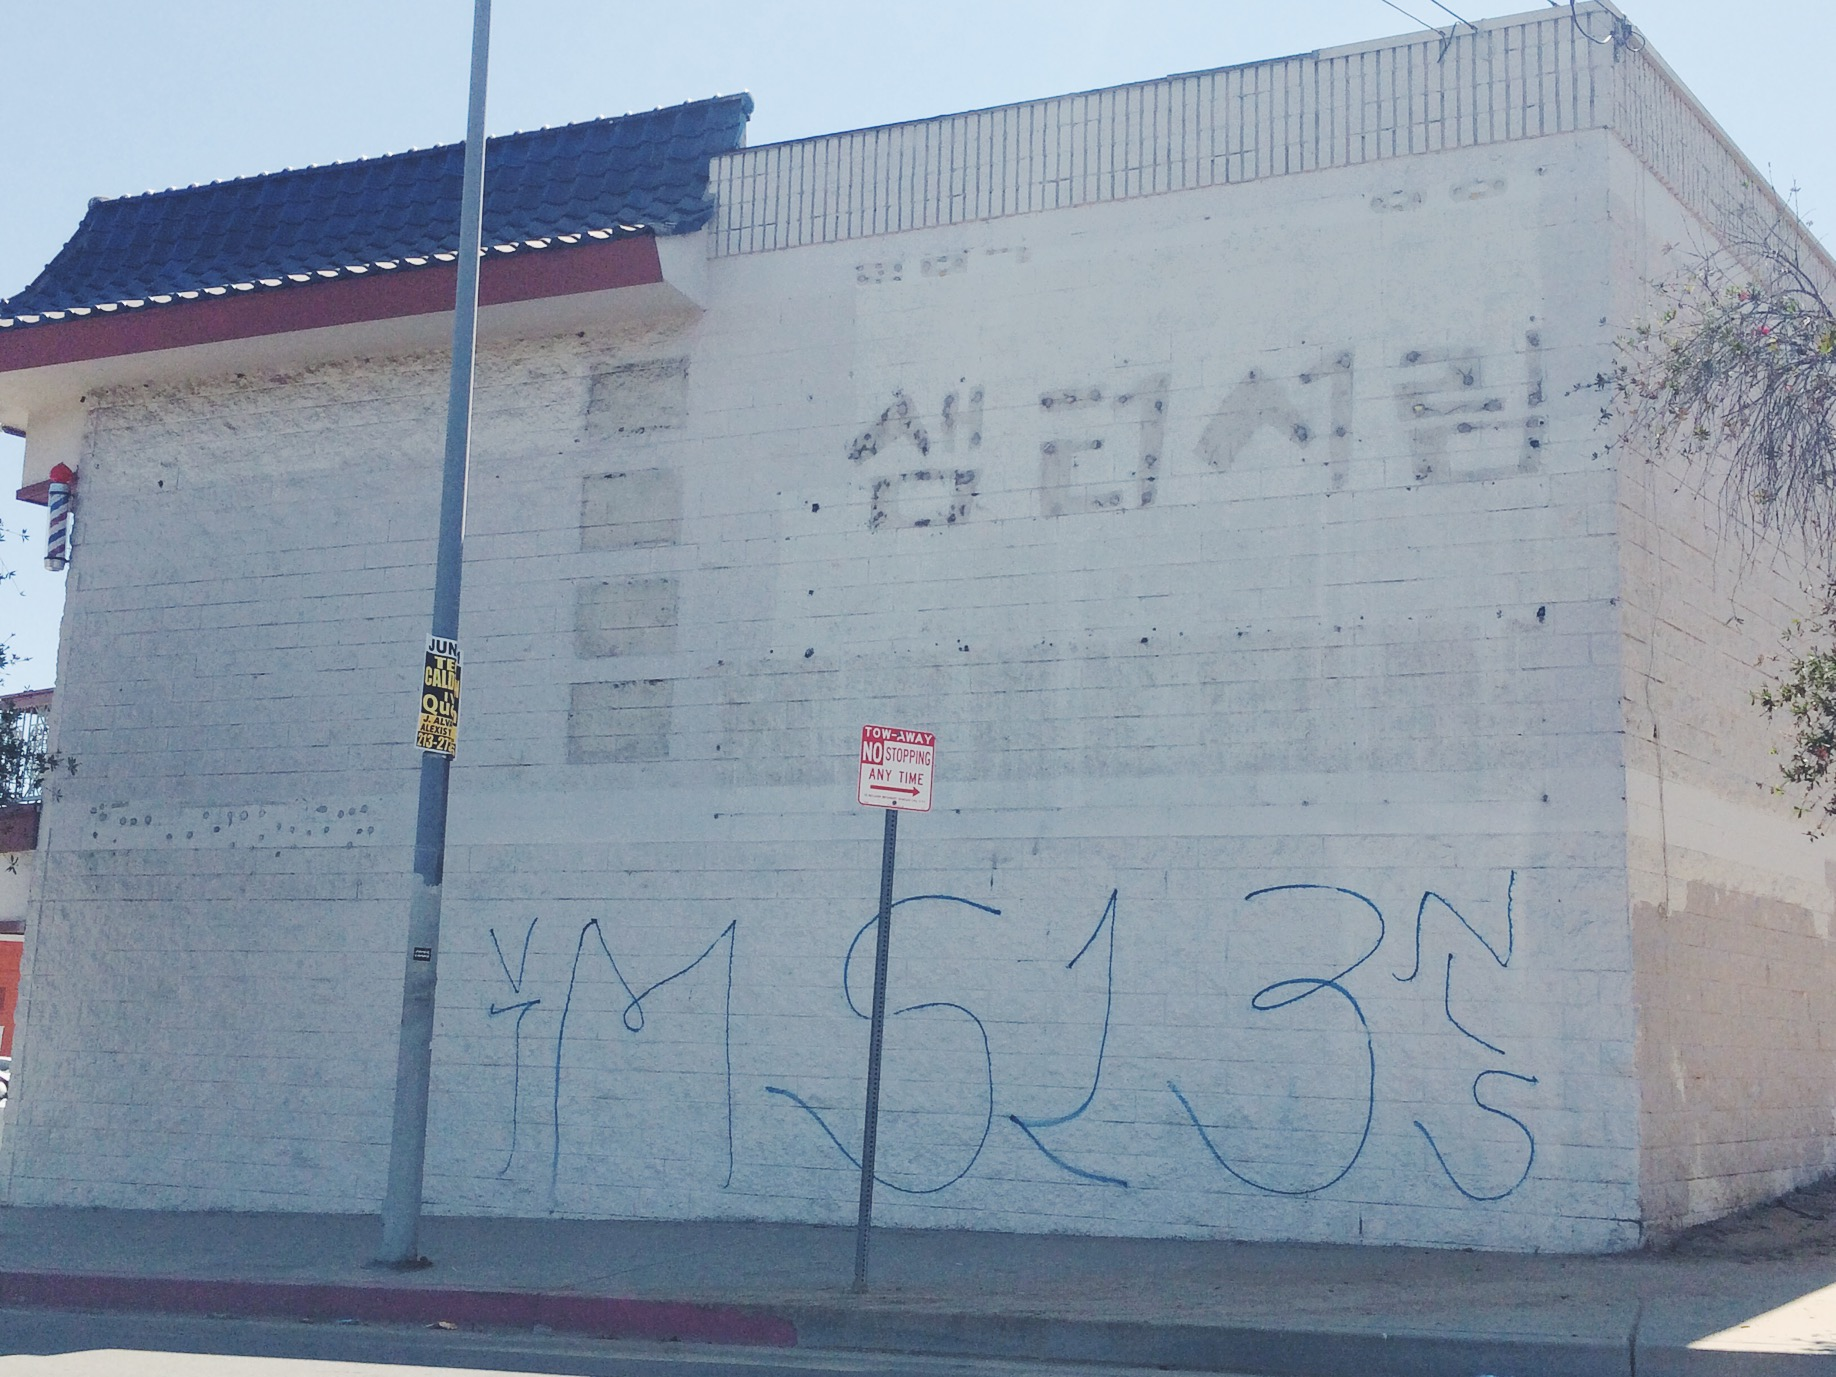 We were greeted by this once we exit the freeway. MS13 tags on every block till we reached the middle of the K-Town.